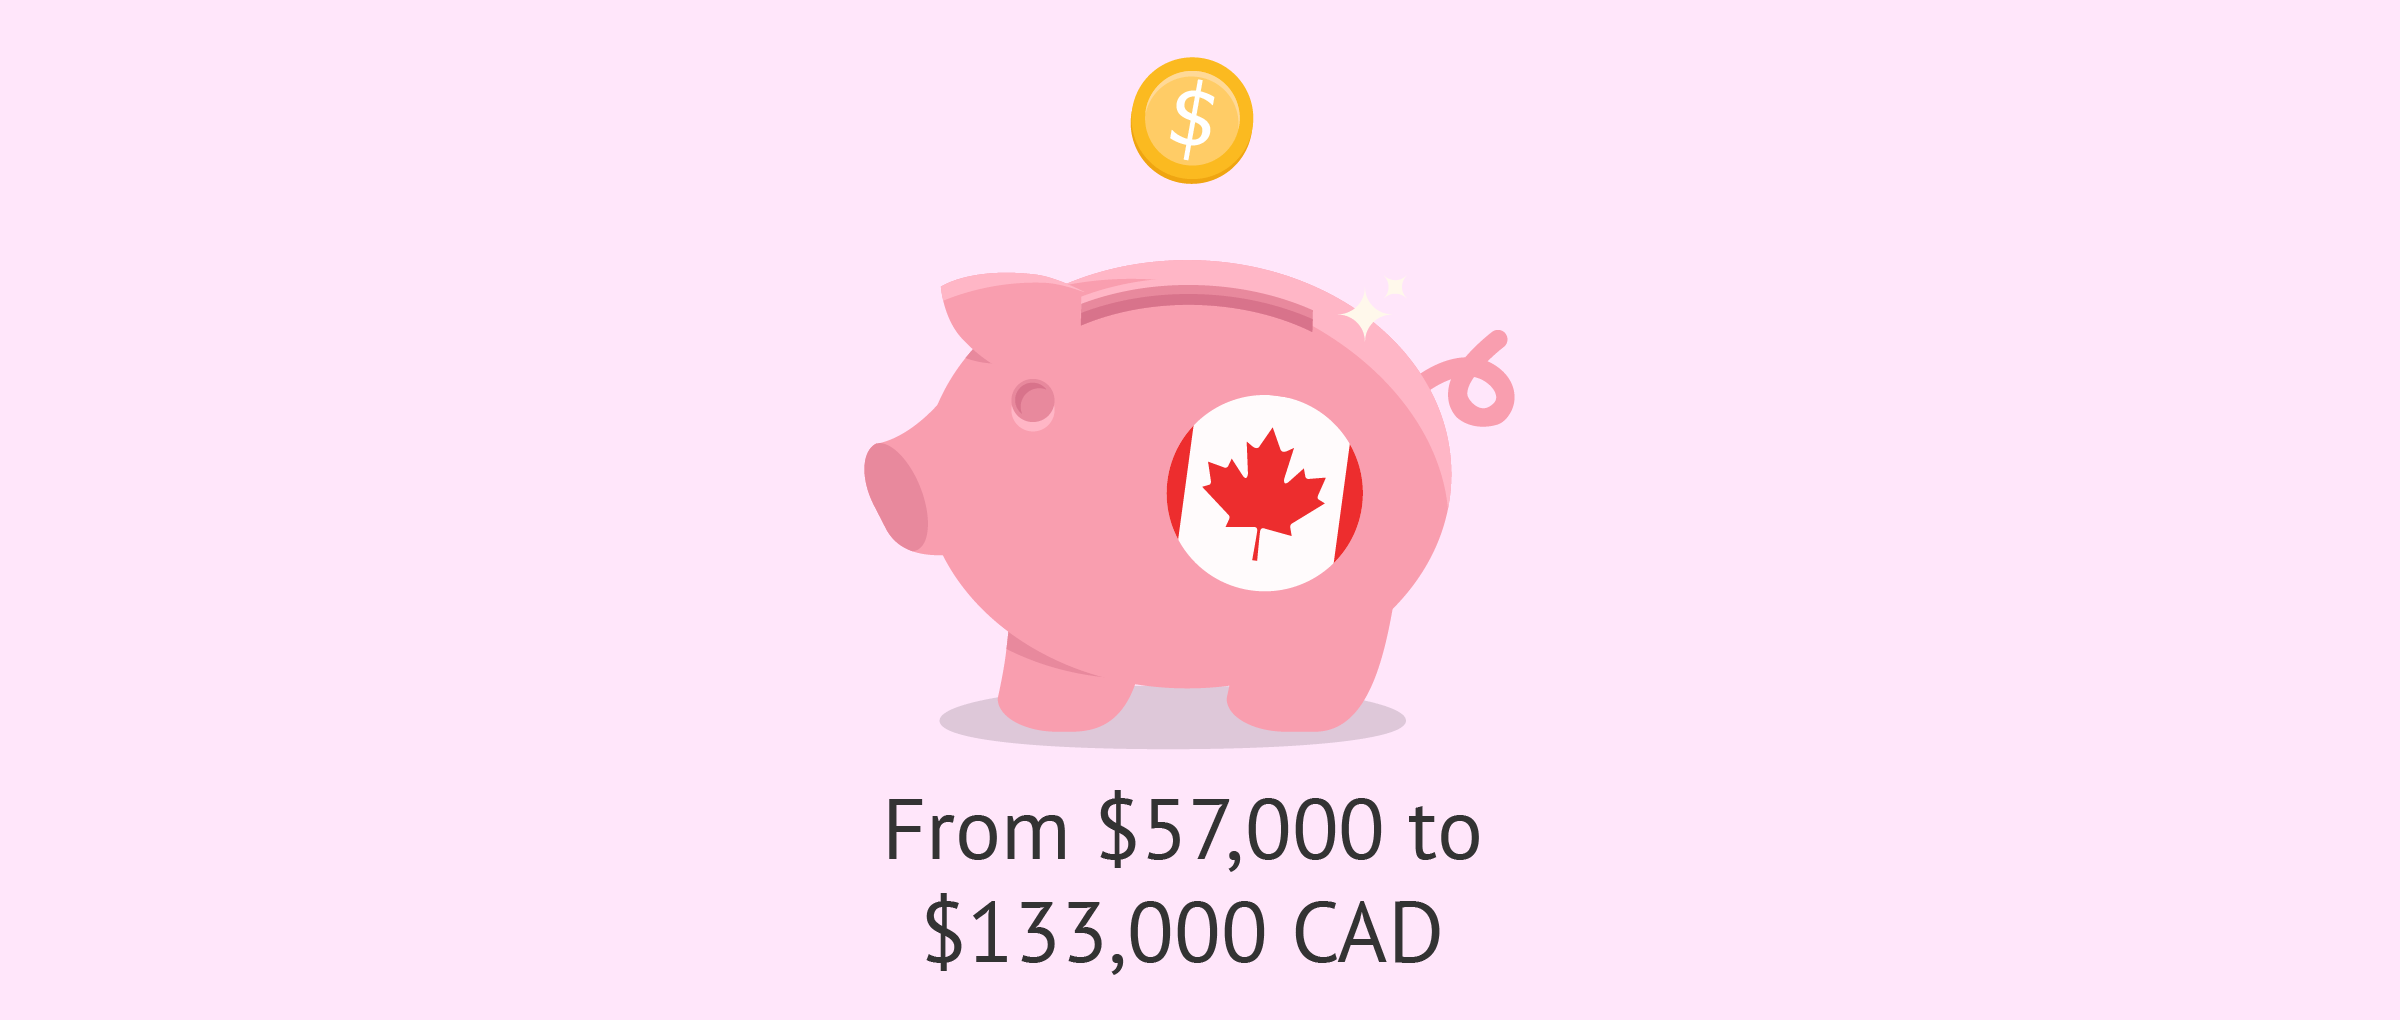 Price of surrogacy in Canada